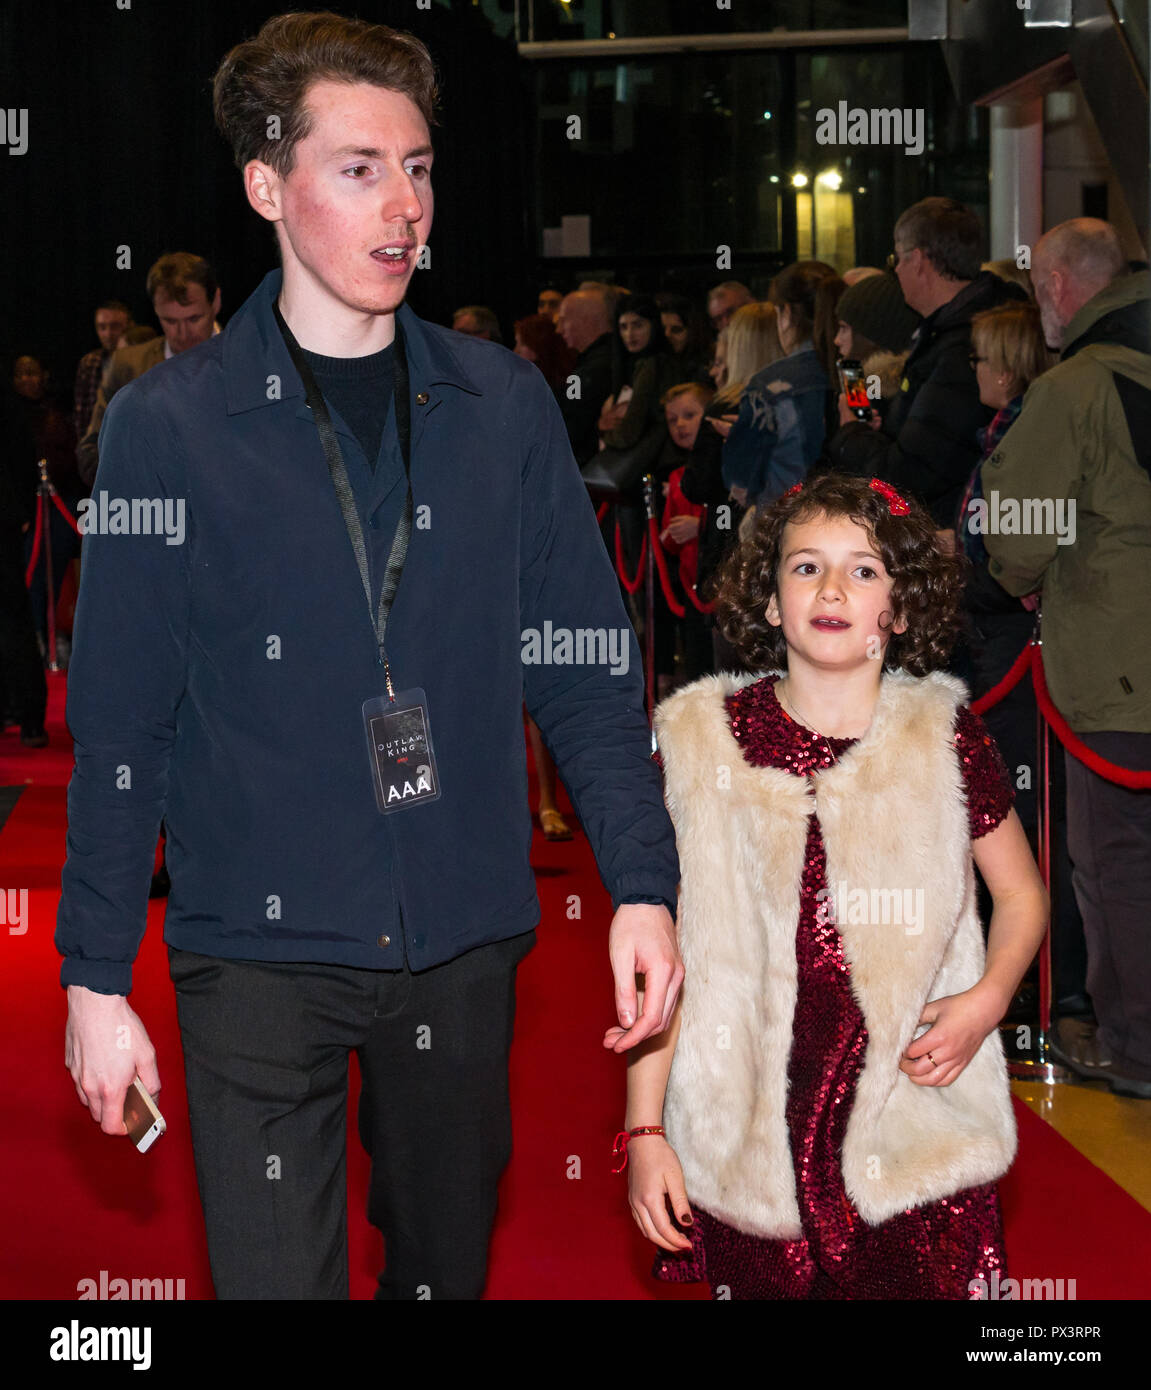 Vue Omni, Leith Walk, Edinburgh, Scotland, United Kingdom, 19th October 2018. Stars attend the Scottish premiere of Netflix Outlaw King. The red carpet is laid out the for the cast and team producing Netflix's latest blockbuster film. Josie O'Brien, who plays Marjorie, Robert the Bruce's daughter is escorted - Stock Image